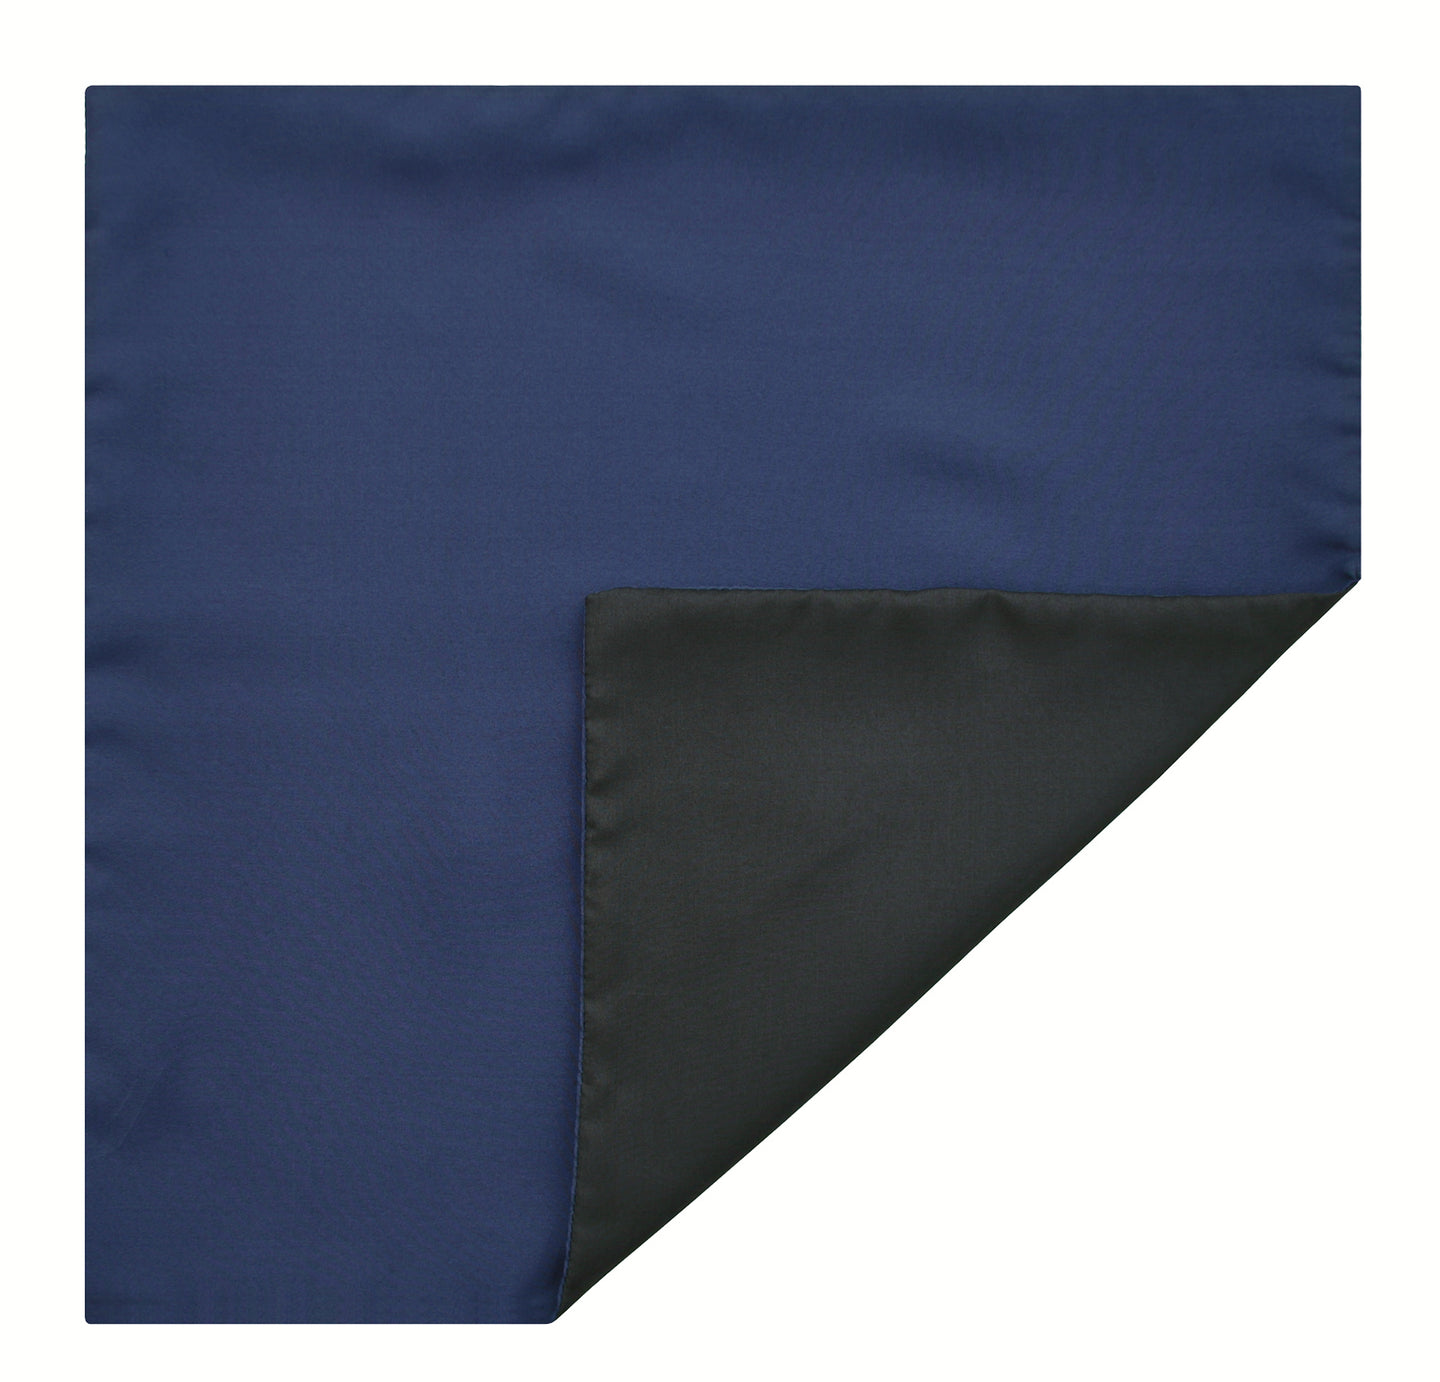 Mimi Fong Reversible Silk Pocket Square in Navy & Black